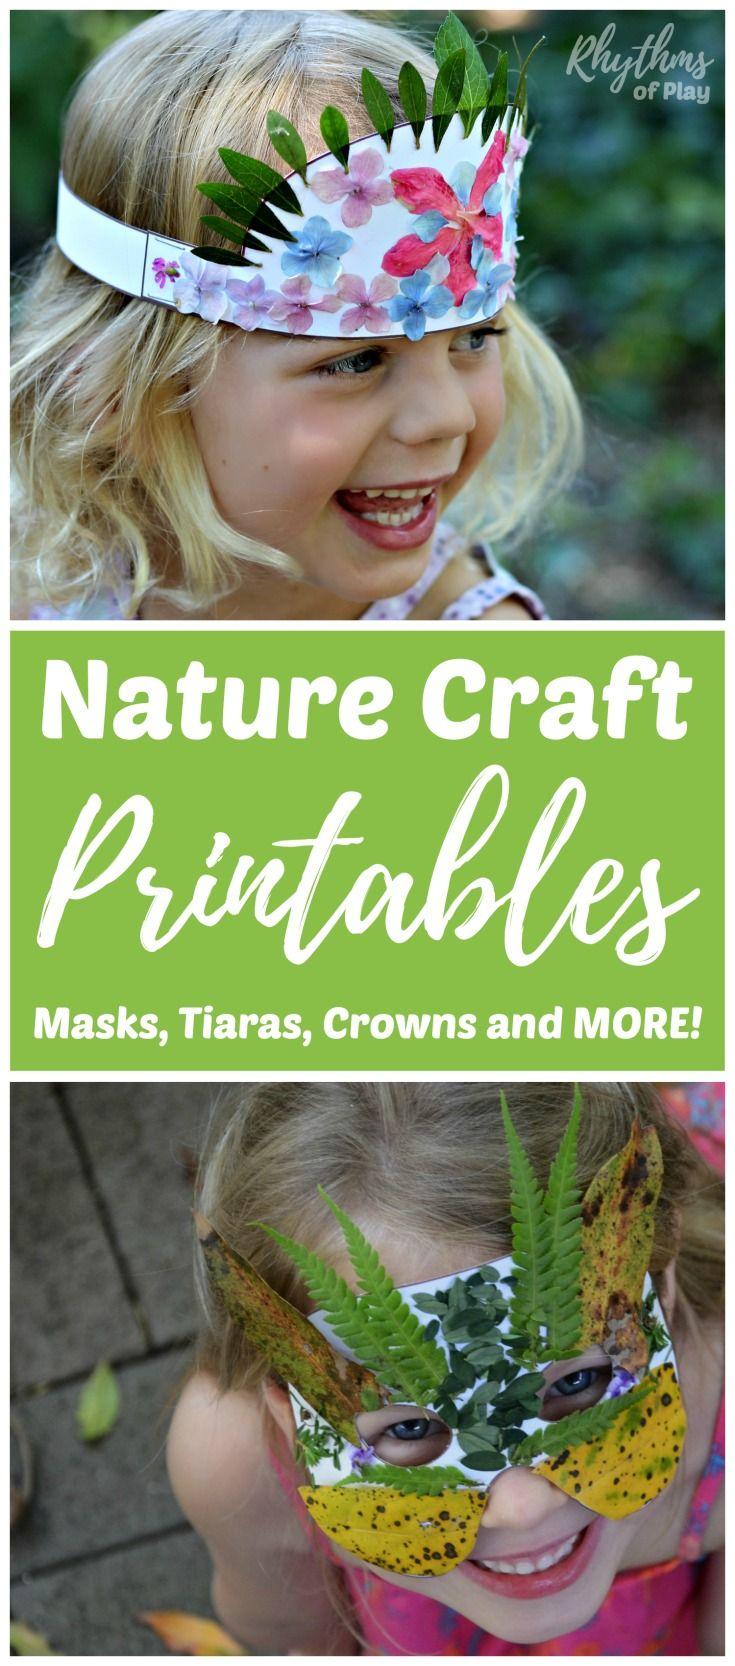 Nature Masks Tiaras Crowns and More! Kids will love how easy it is to create nature arts and crafts with these fun printables. Get outside, explore nature, engage the senses, and use the fine motor muscles to create wearable art. A hands-on learning punch hard to beat! Perfect for forest school or a nature study unit.